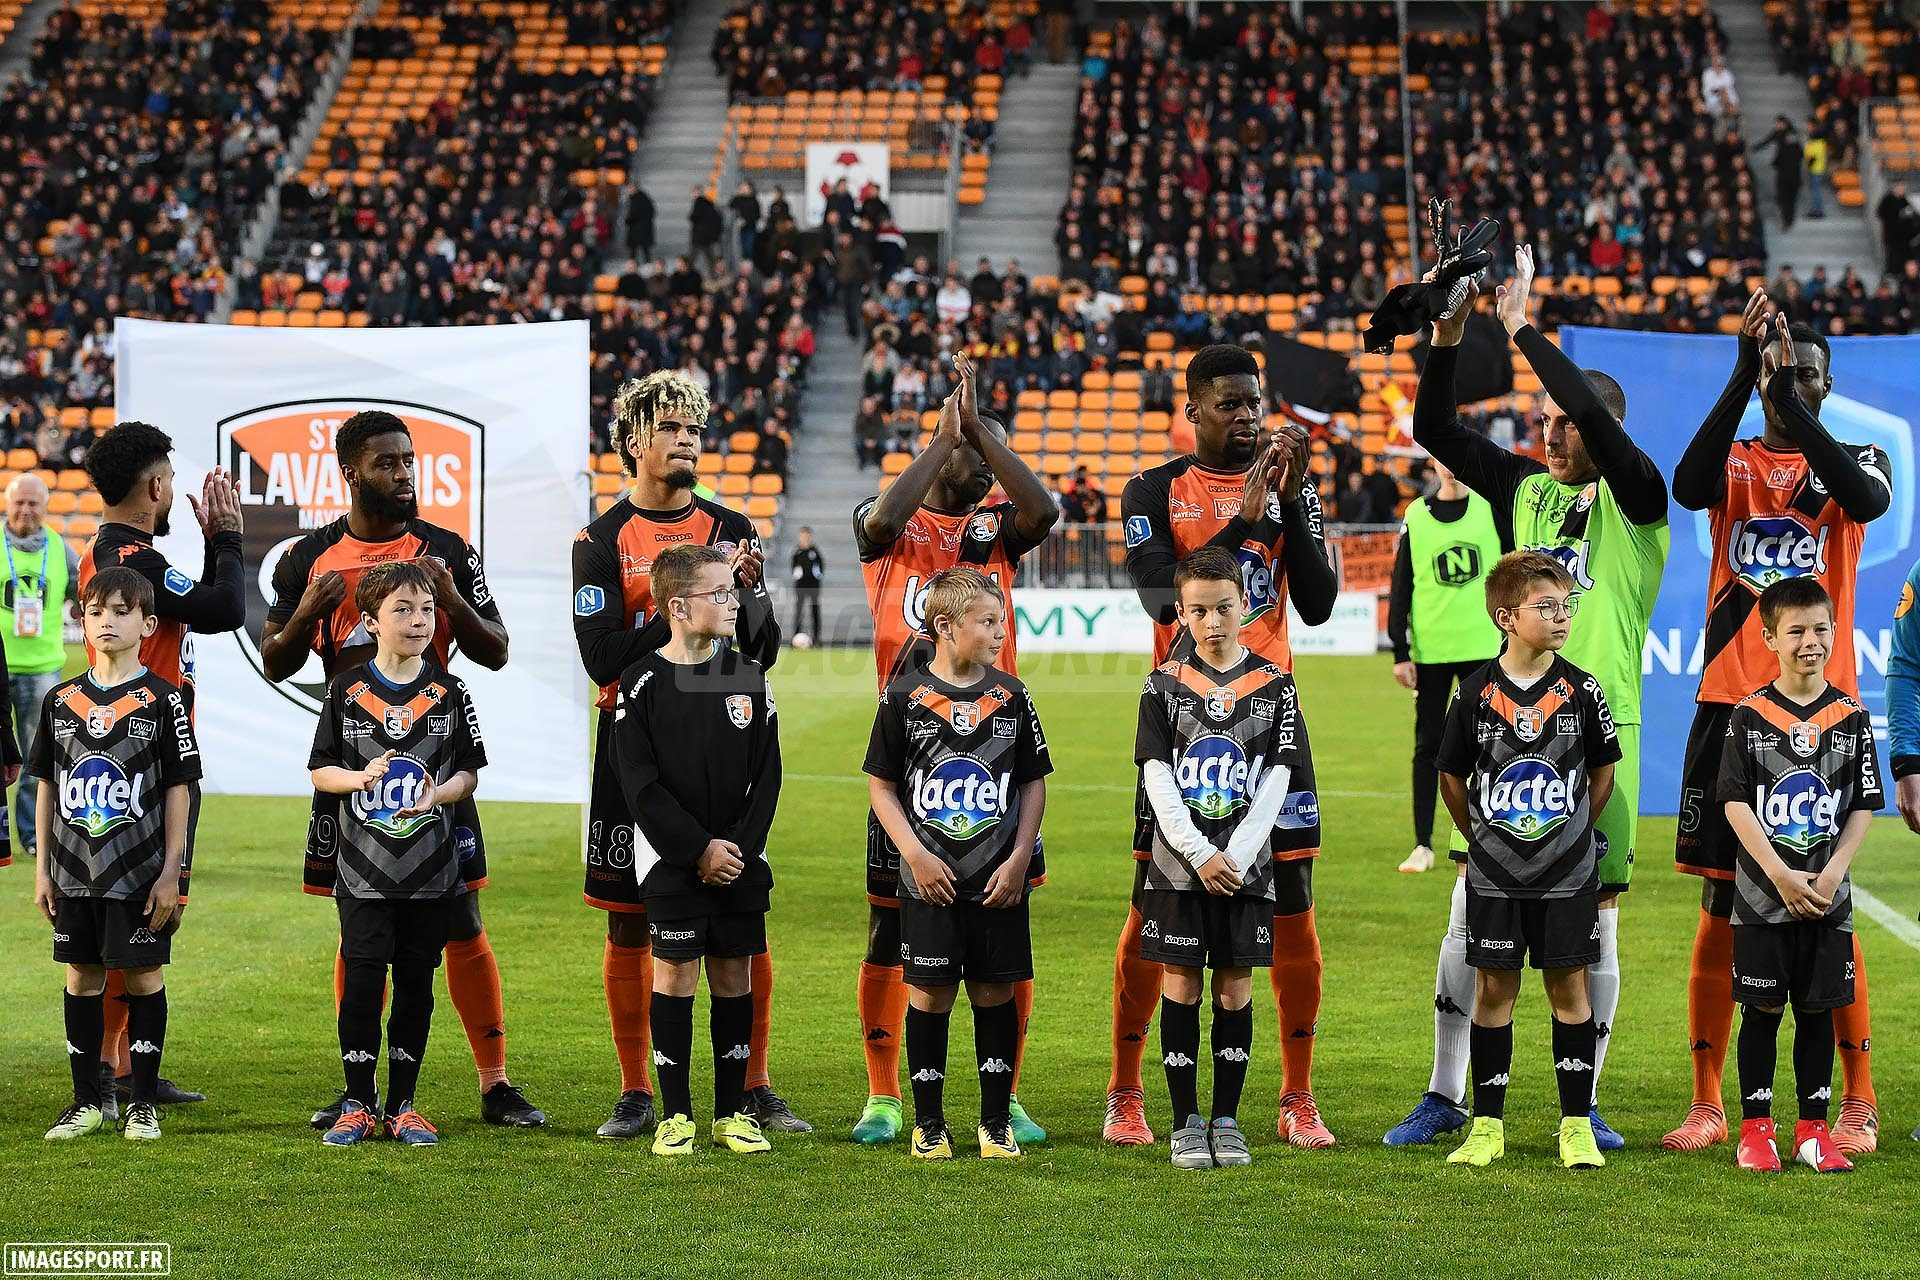 18-19-national-laval-rodez_19